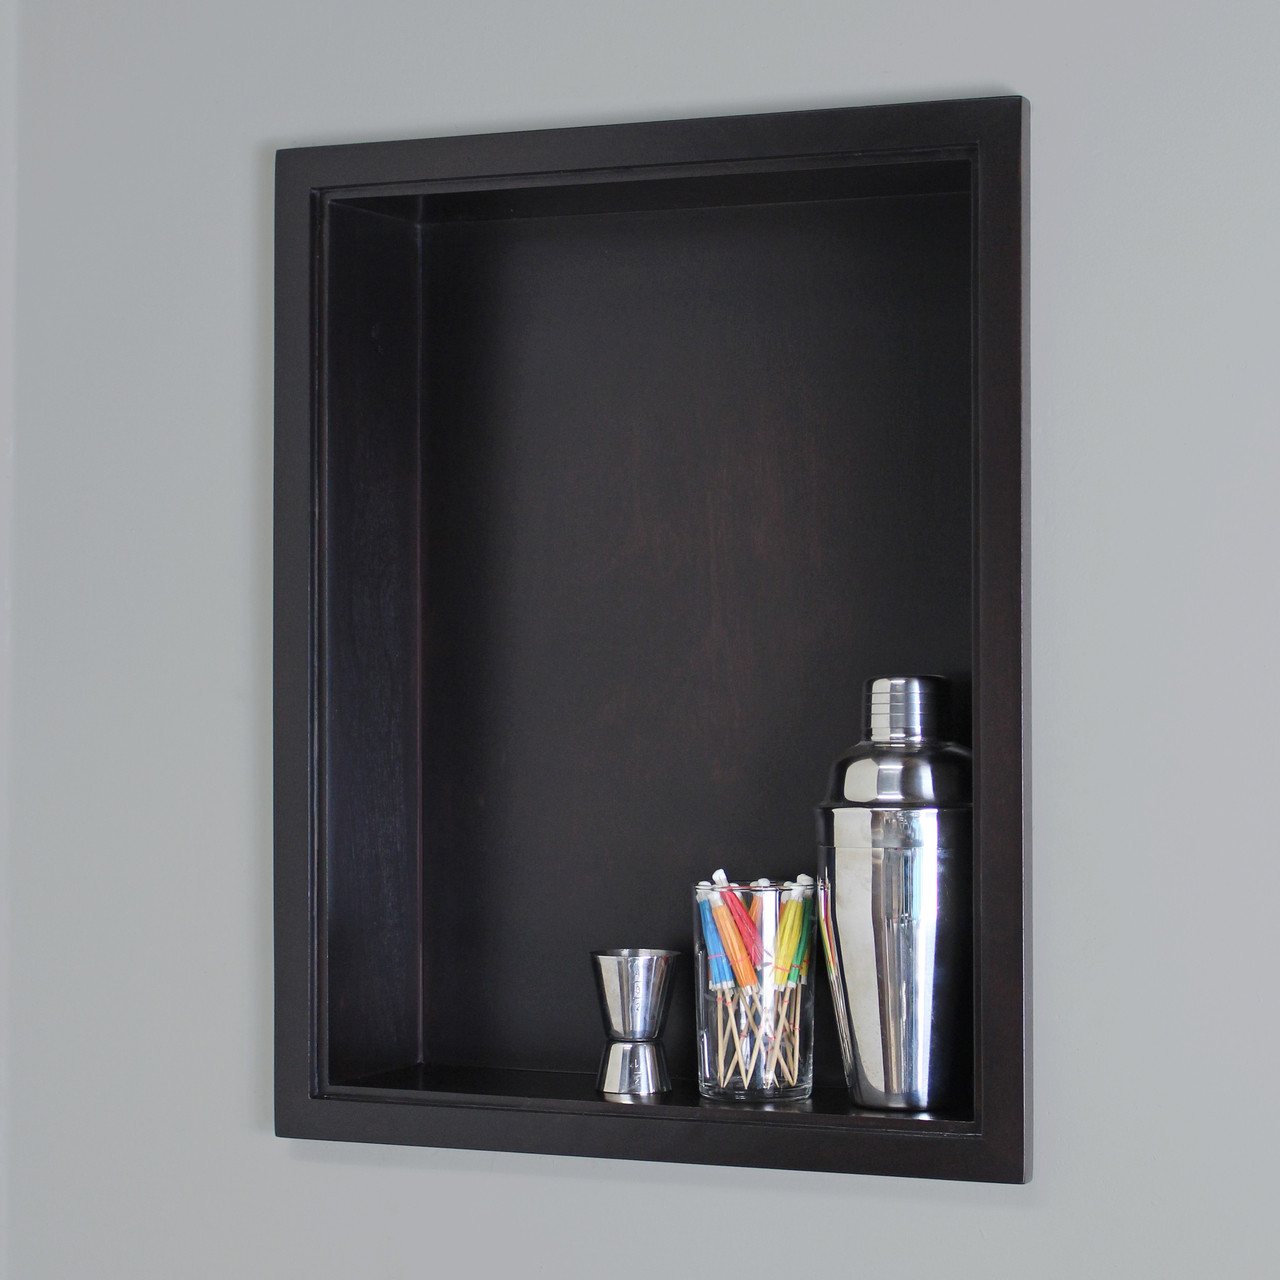 14 X 18 Recessed Medicine Cabinet 14x18 Dark Brown Recessed Sloane Wall Niche W Plain Back And No Shelf